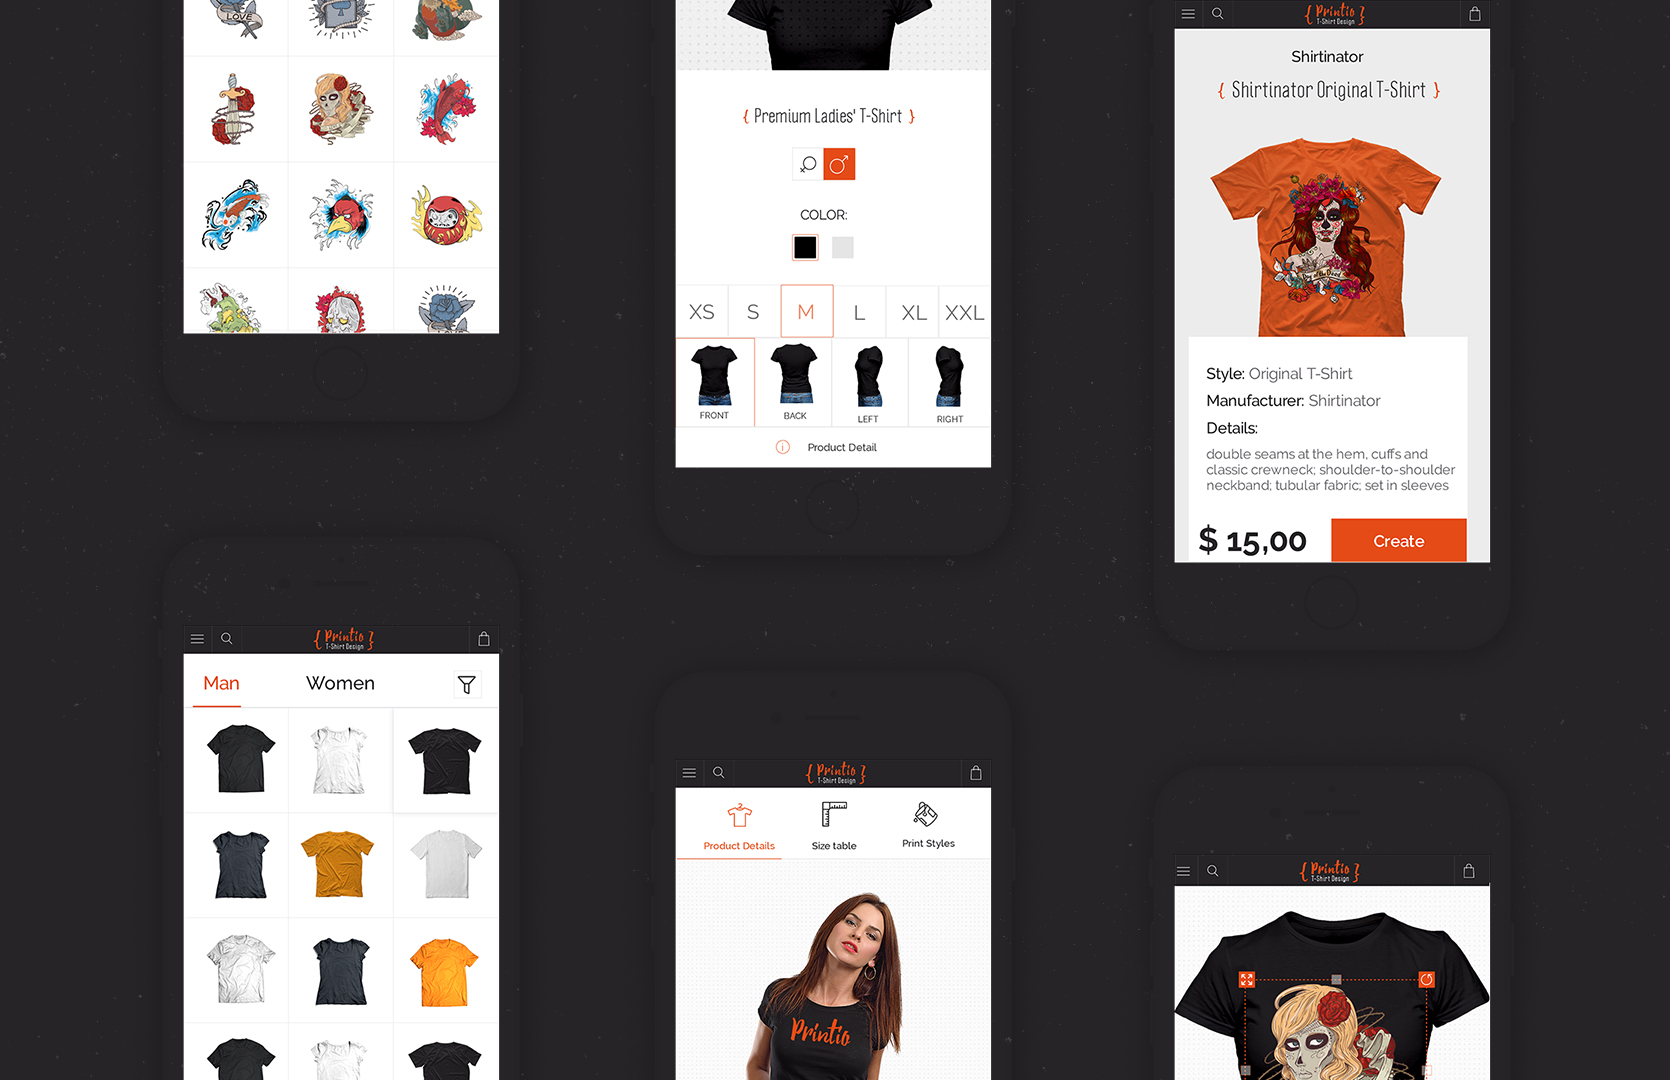 Great t shirt designer website template mobilunity for Websites to create shirts